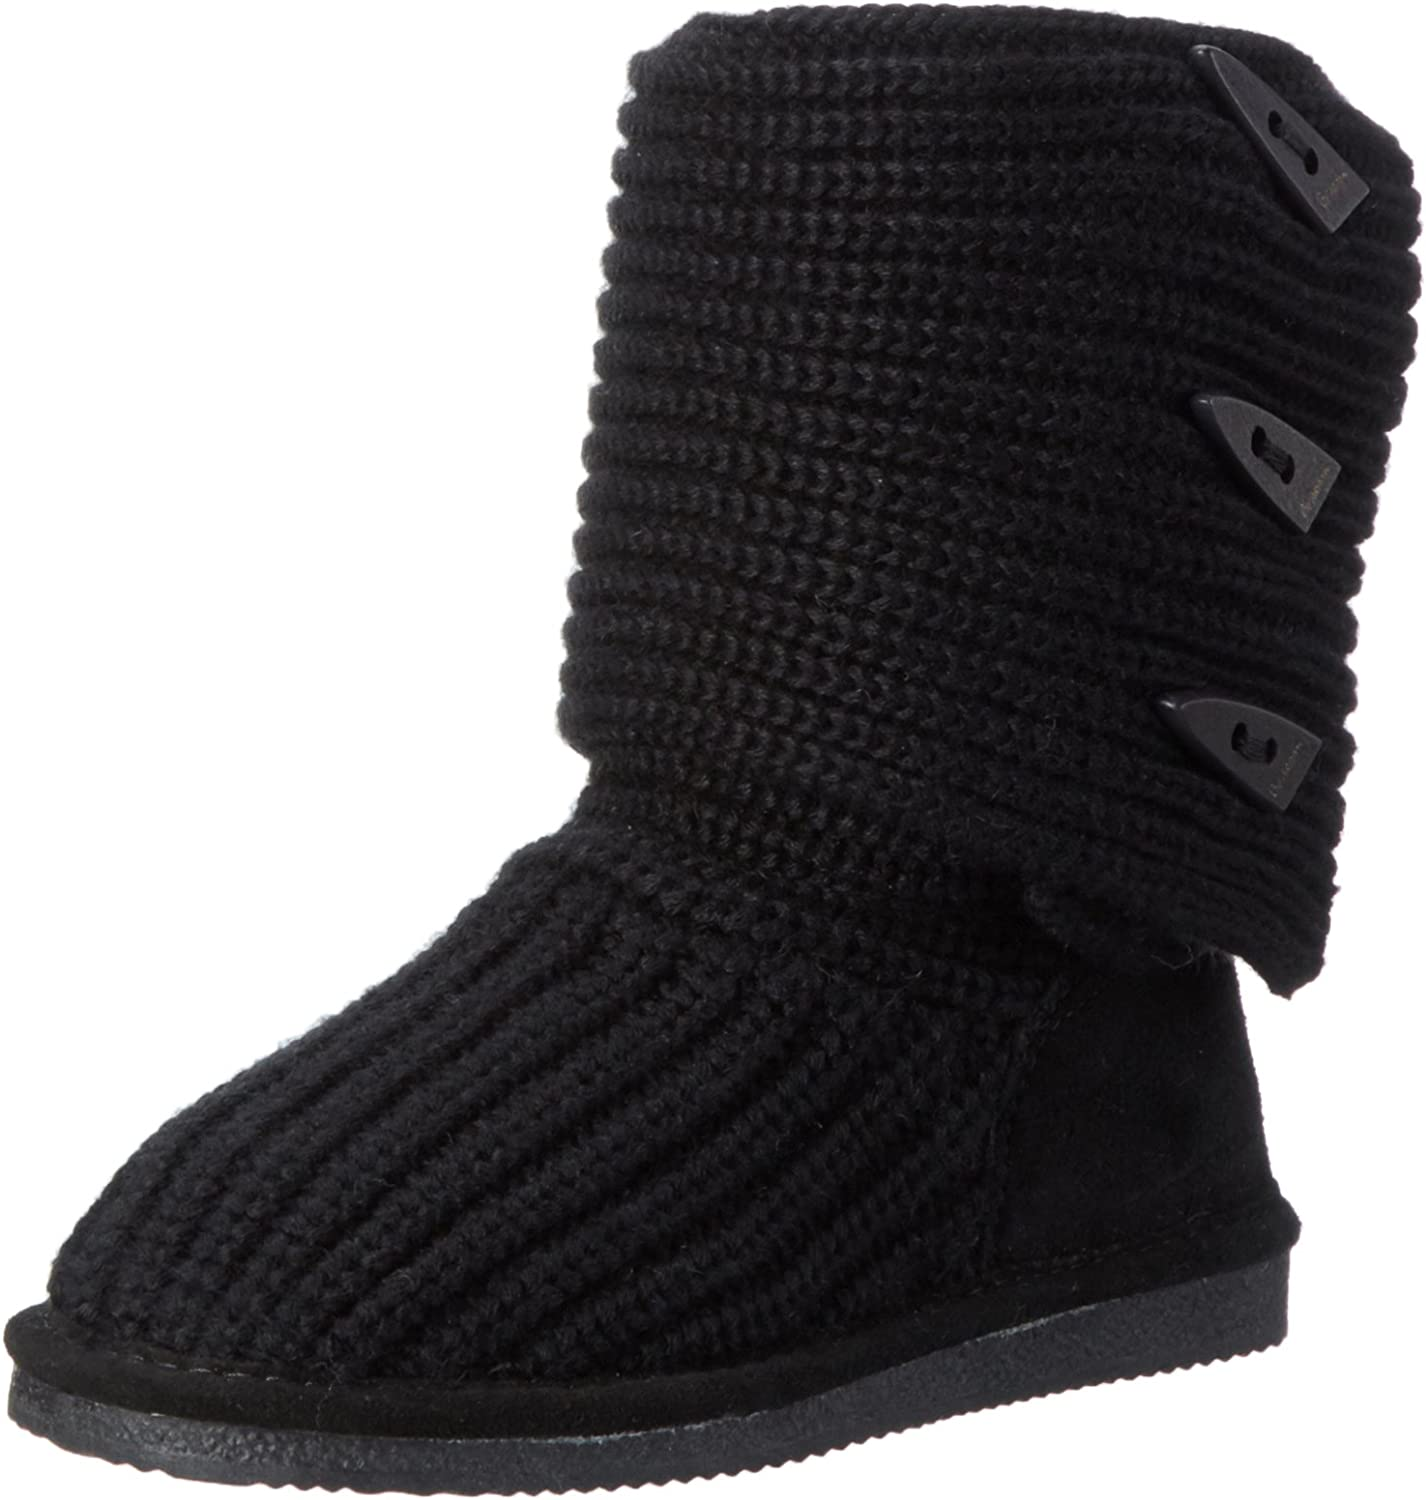 Bearpaw Women's Knit Tall Winter Boot